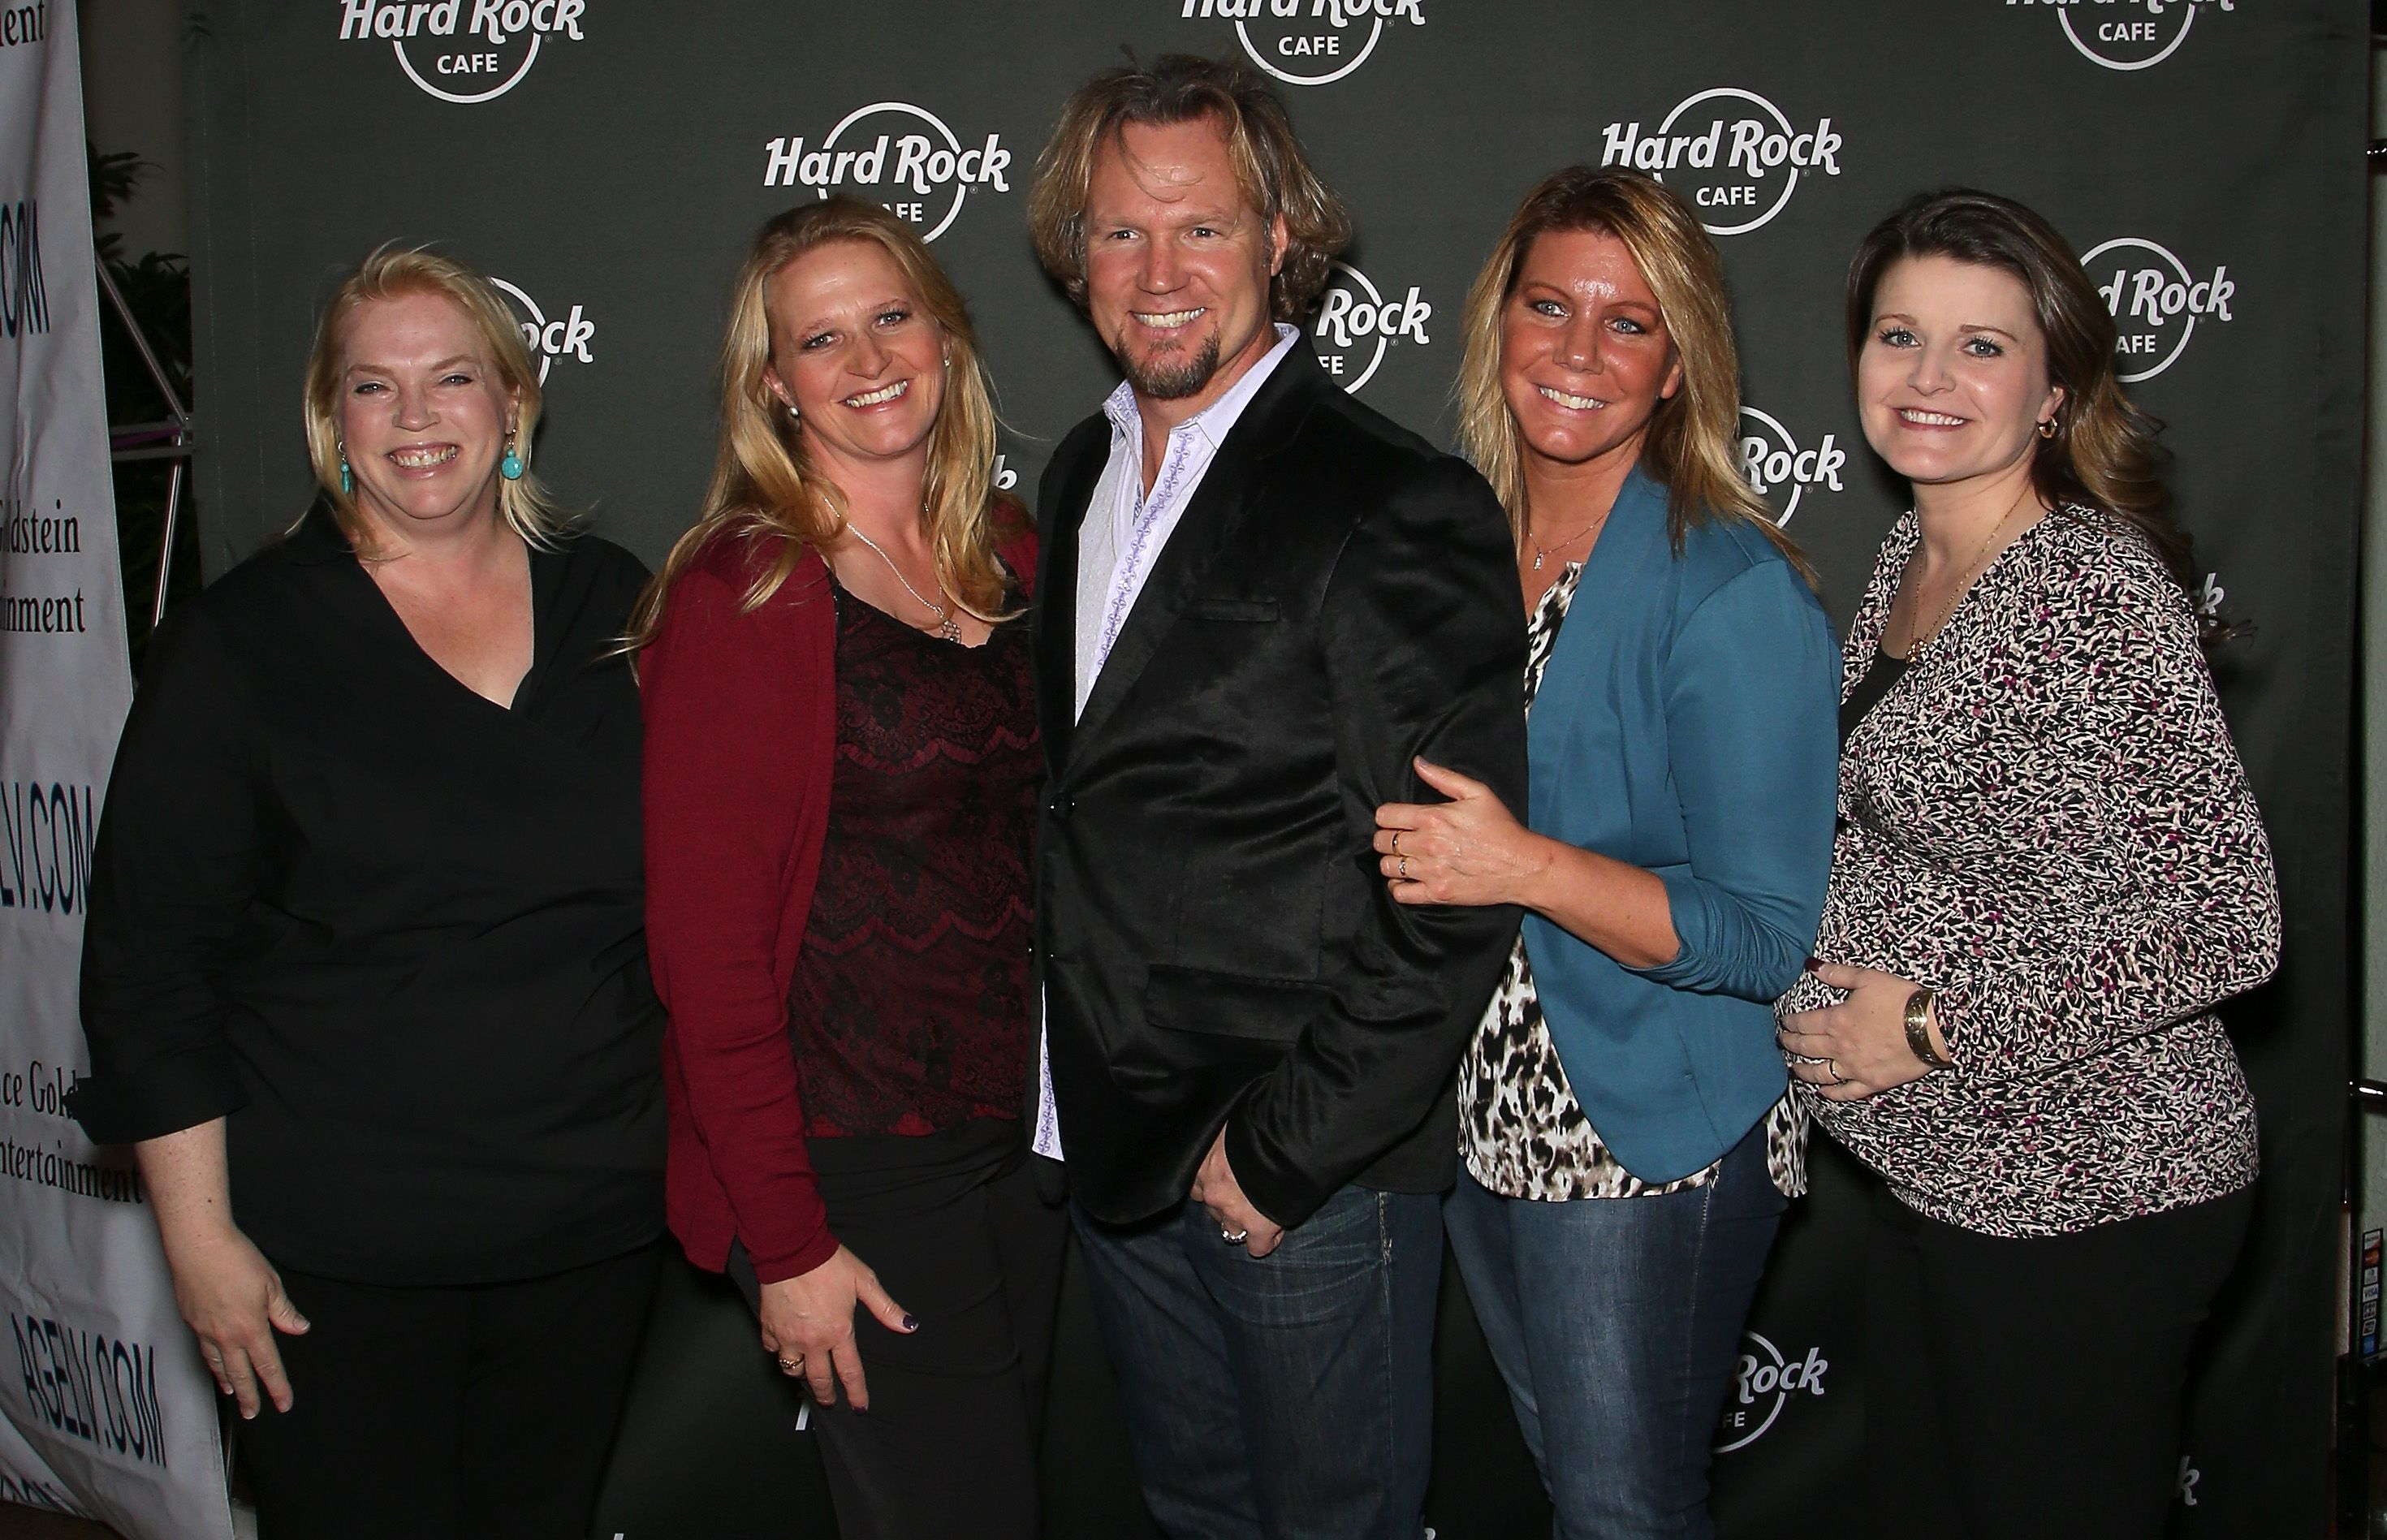 Kody Brown and his wives Janelle Brown, Christine Brown, Meri Brown and Robyn Brown, at Hard Rock Cafe Las Vegas on October 10, 2015. | Photo: Getty Images